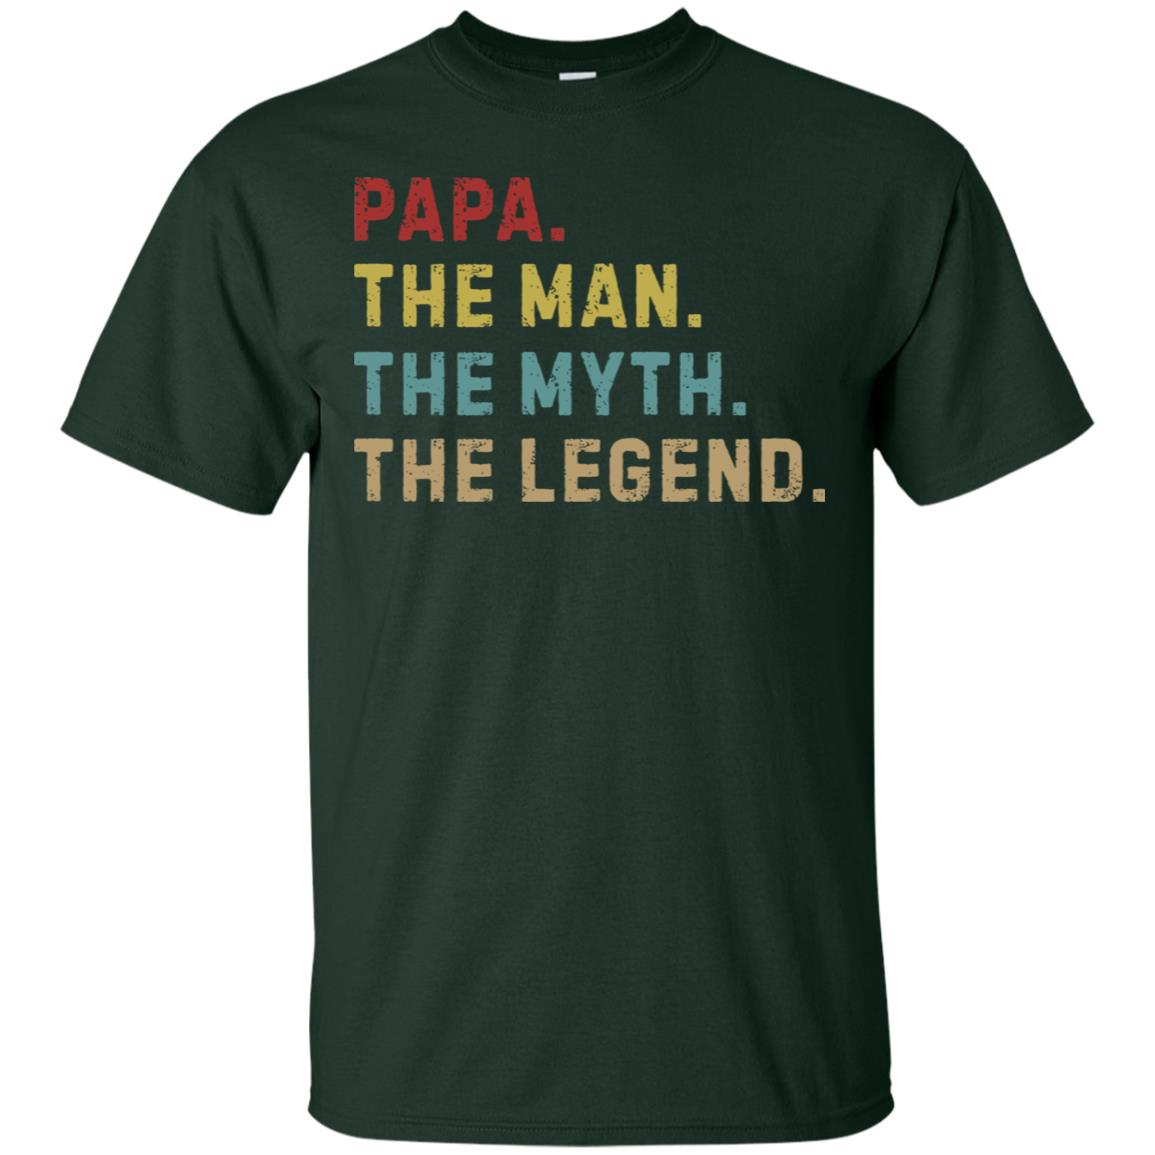 Gildan Pullover Sweatshirt Size Chart Papa The Man The Myth The Legend T Shirt Ls Hoodie